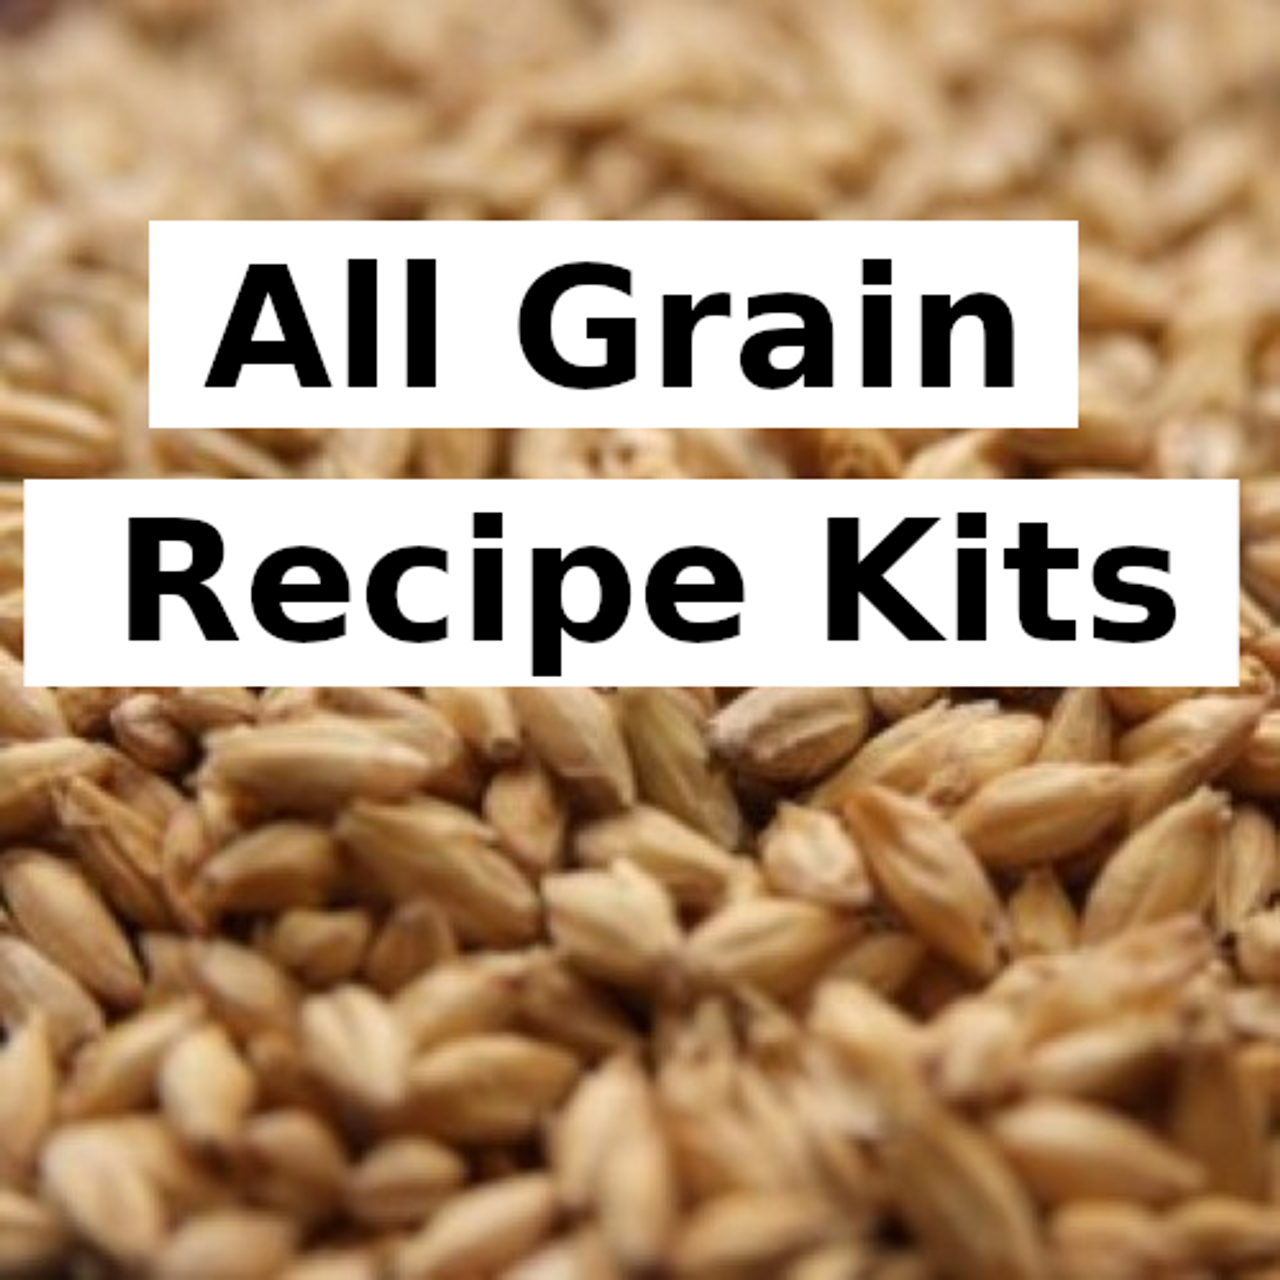 All Grain Recipe Kits